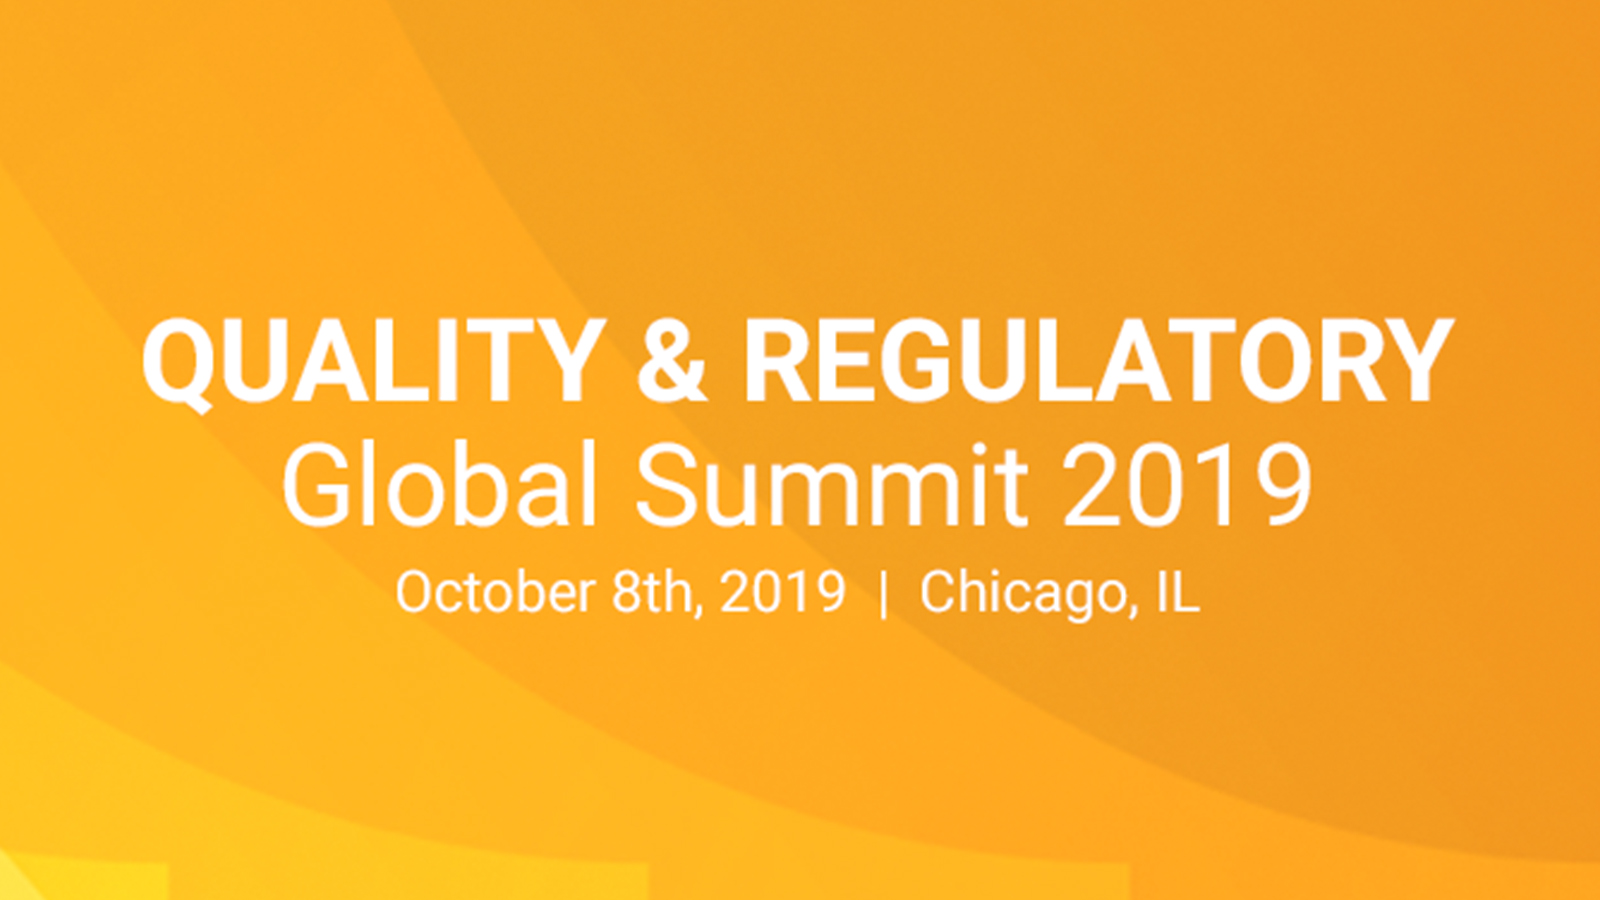 Veeva Quality & Regulatory Summit to Feature Top Consumer Goods, Chemical, and Cosmetics Companies